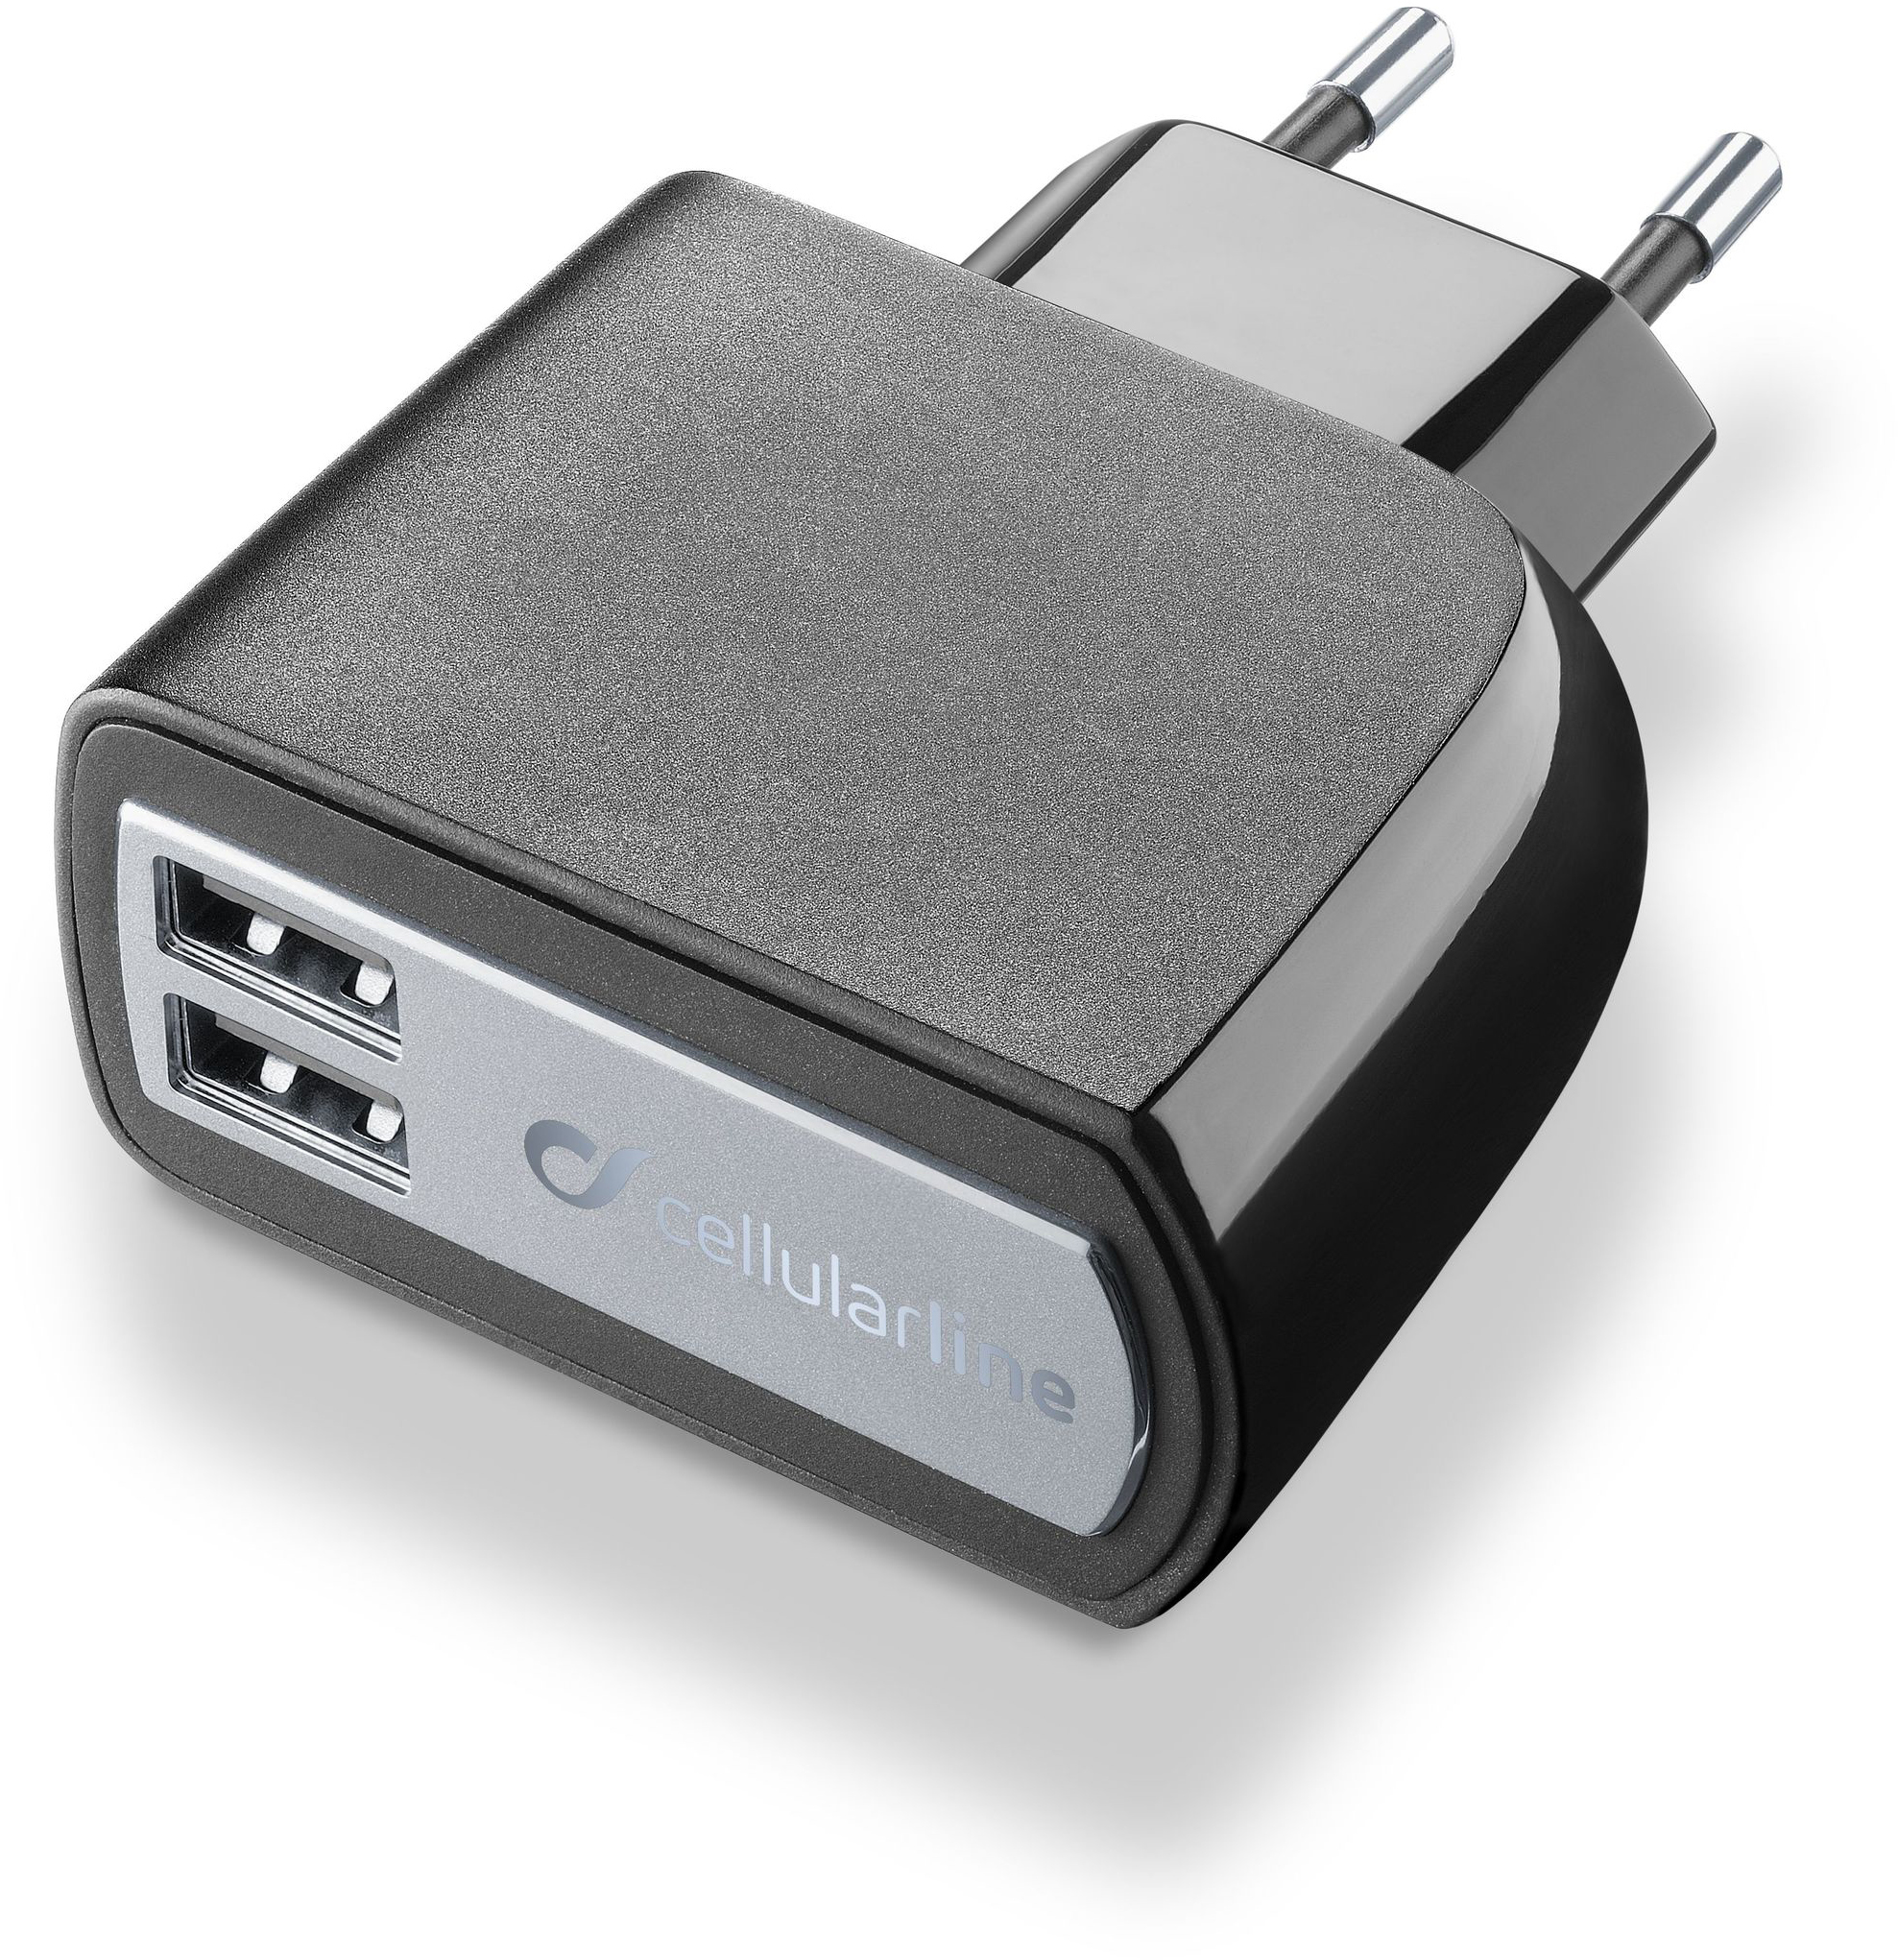 USB lader 220V med to porter